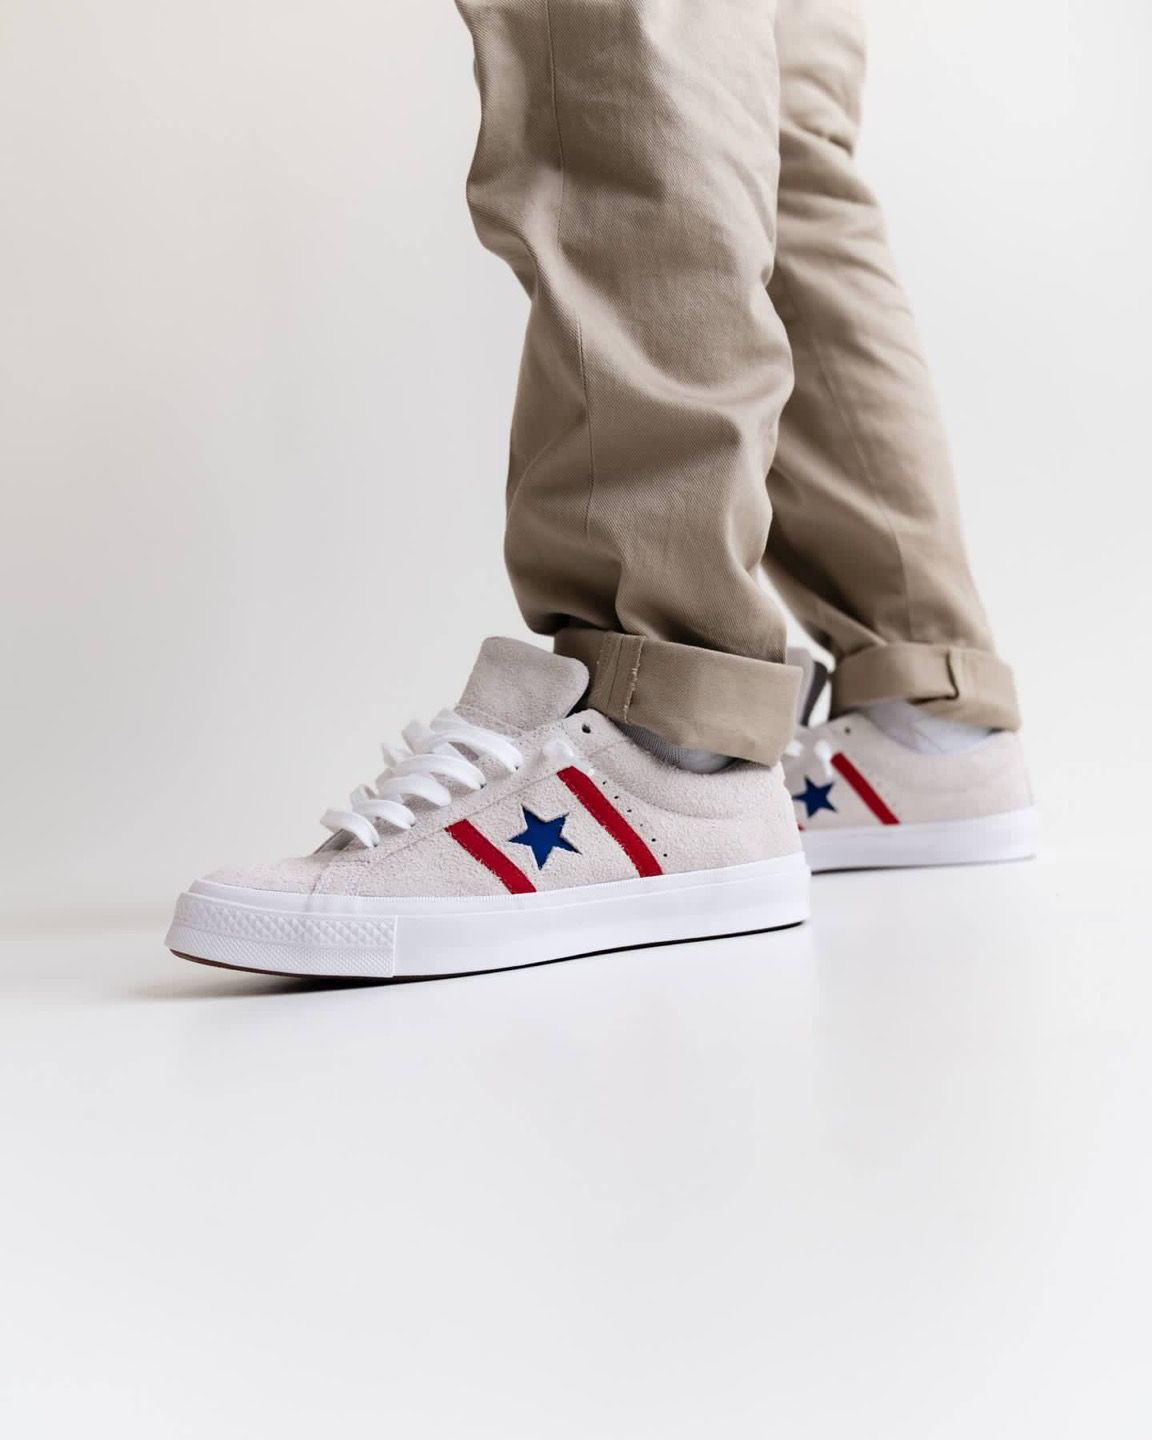 Converse One Star Ox in 2019 | Converse one star, Sneakers